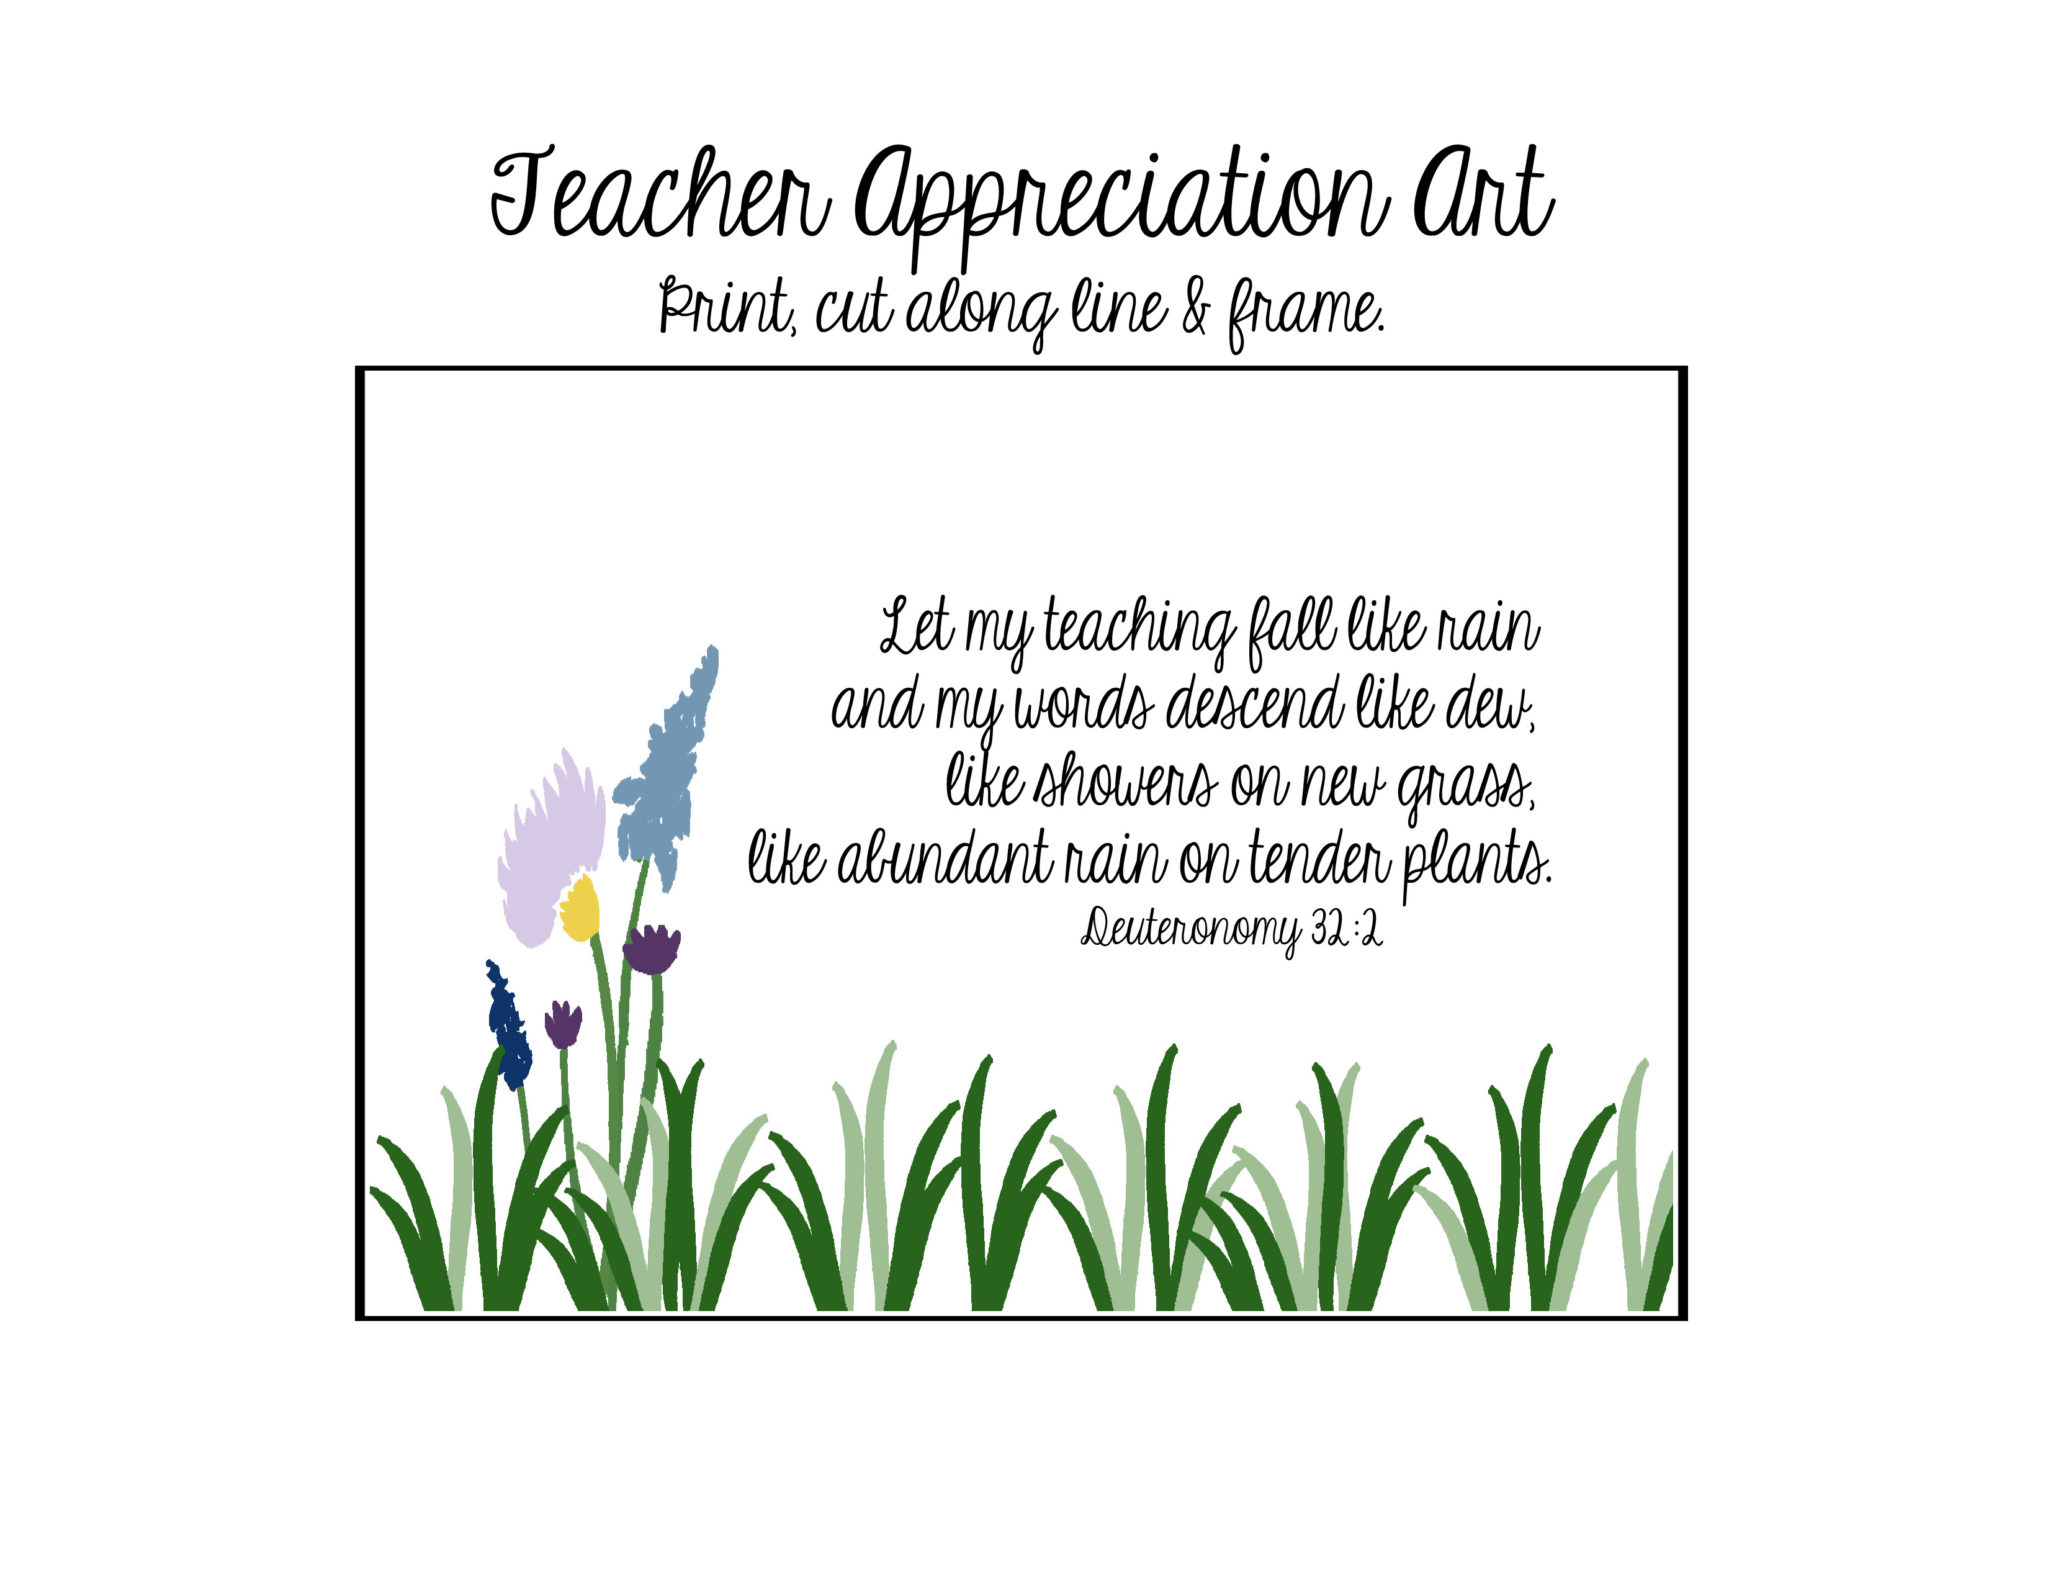 It's just a picture of Refreshing Teacher Appreciation Printable Card